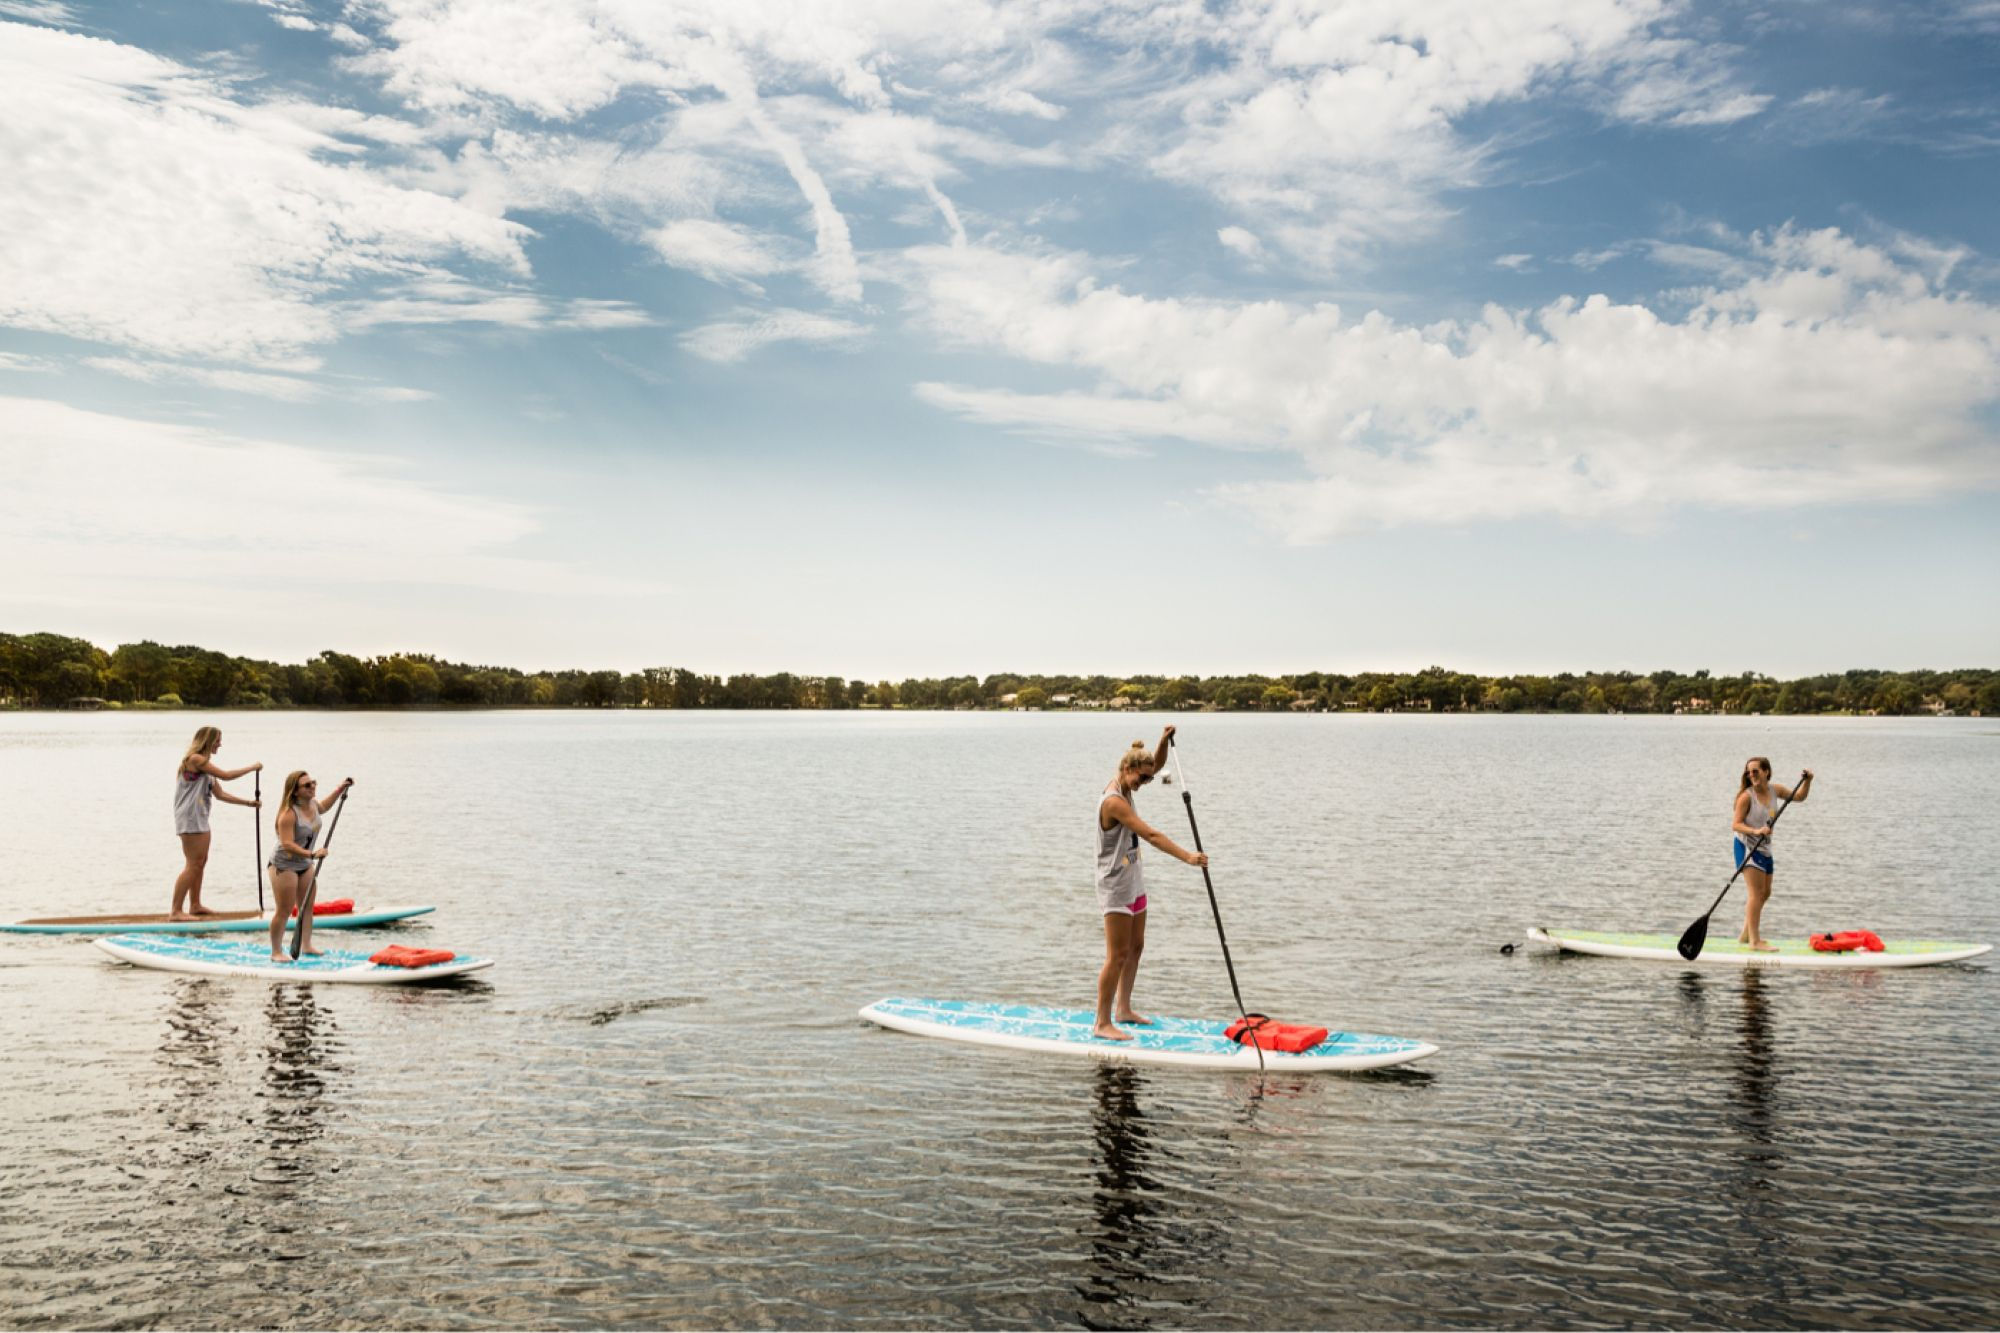 A group of students paddleboard on Lake Virginia.